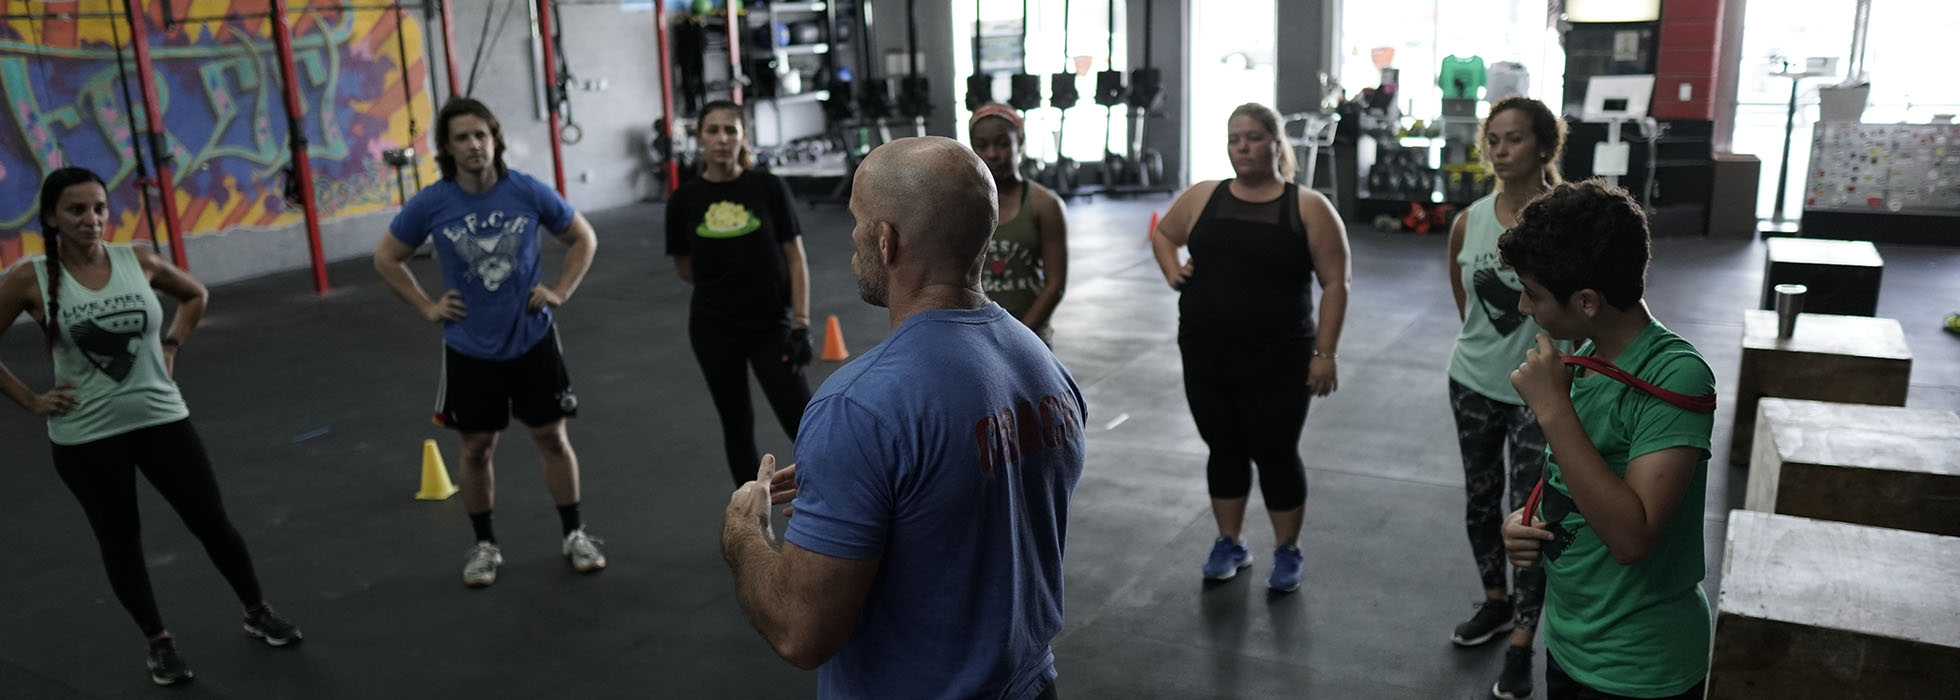 Top 5 Best Gyms To Join in Miami FL, Top 5 Best Gyms To Join near Miami Beach FL, Top 5 Best Gyms To Join near Miami Shores FL, Top 5 Best Gyms To Join near Biscayne Park FL, Top 5 Best Gyms To Join near Little Haiti FL, Top 5 Best Gyms To Join near Edge Water FL